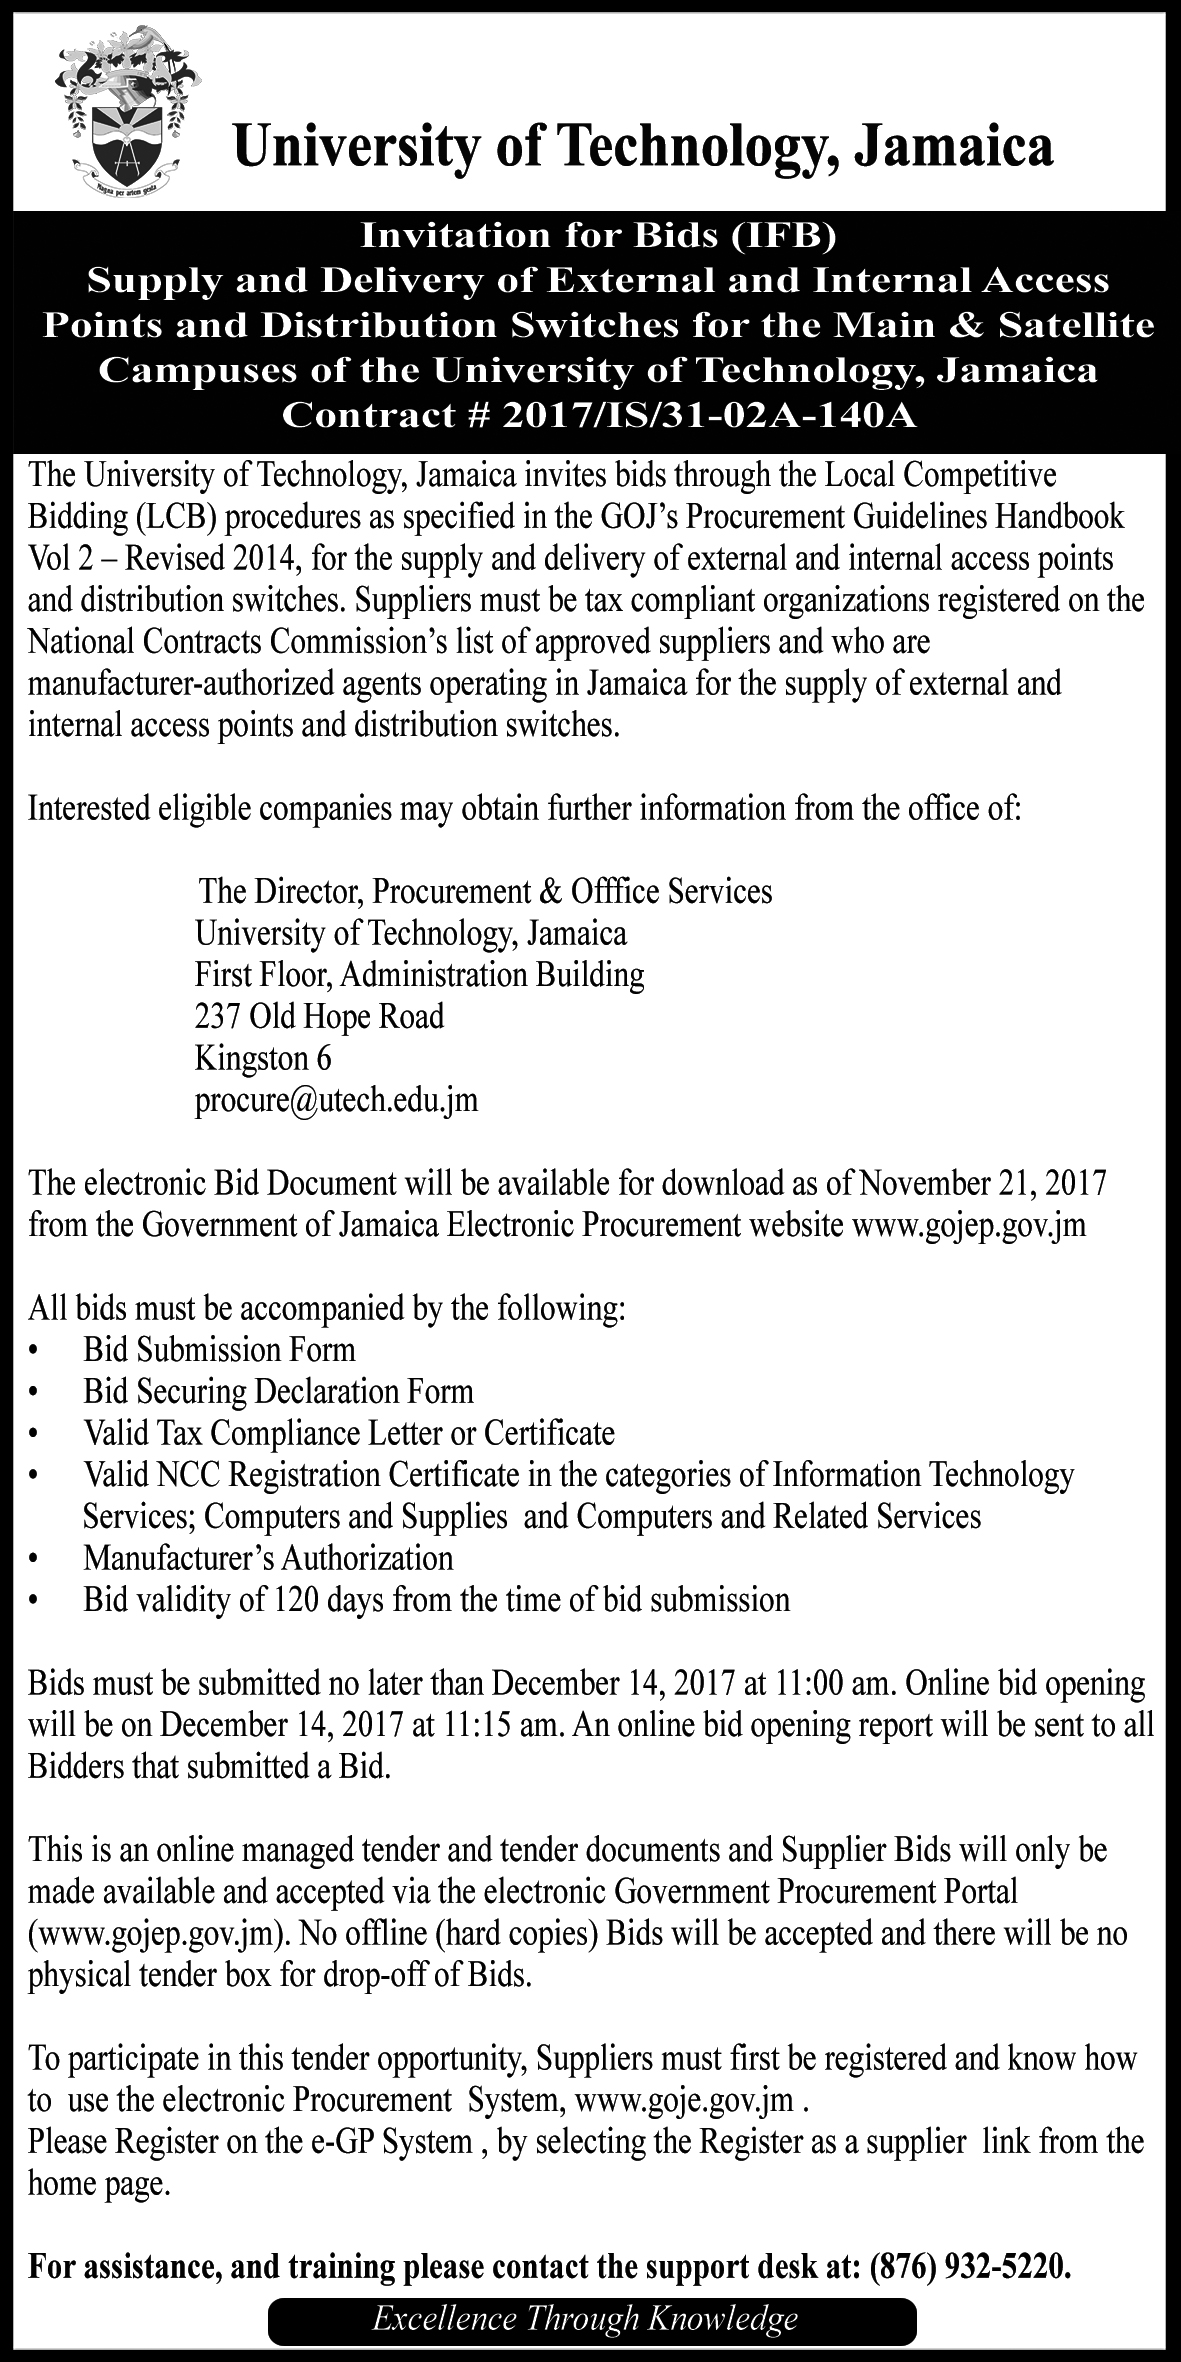 invitation to bid external and internal access points utech ja